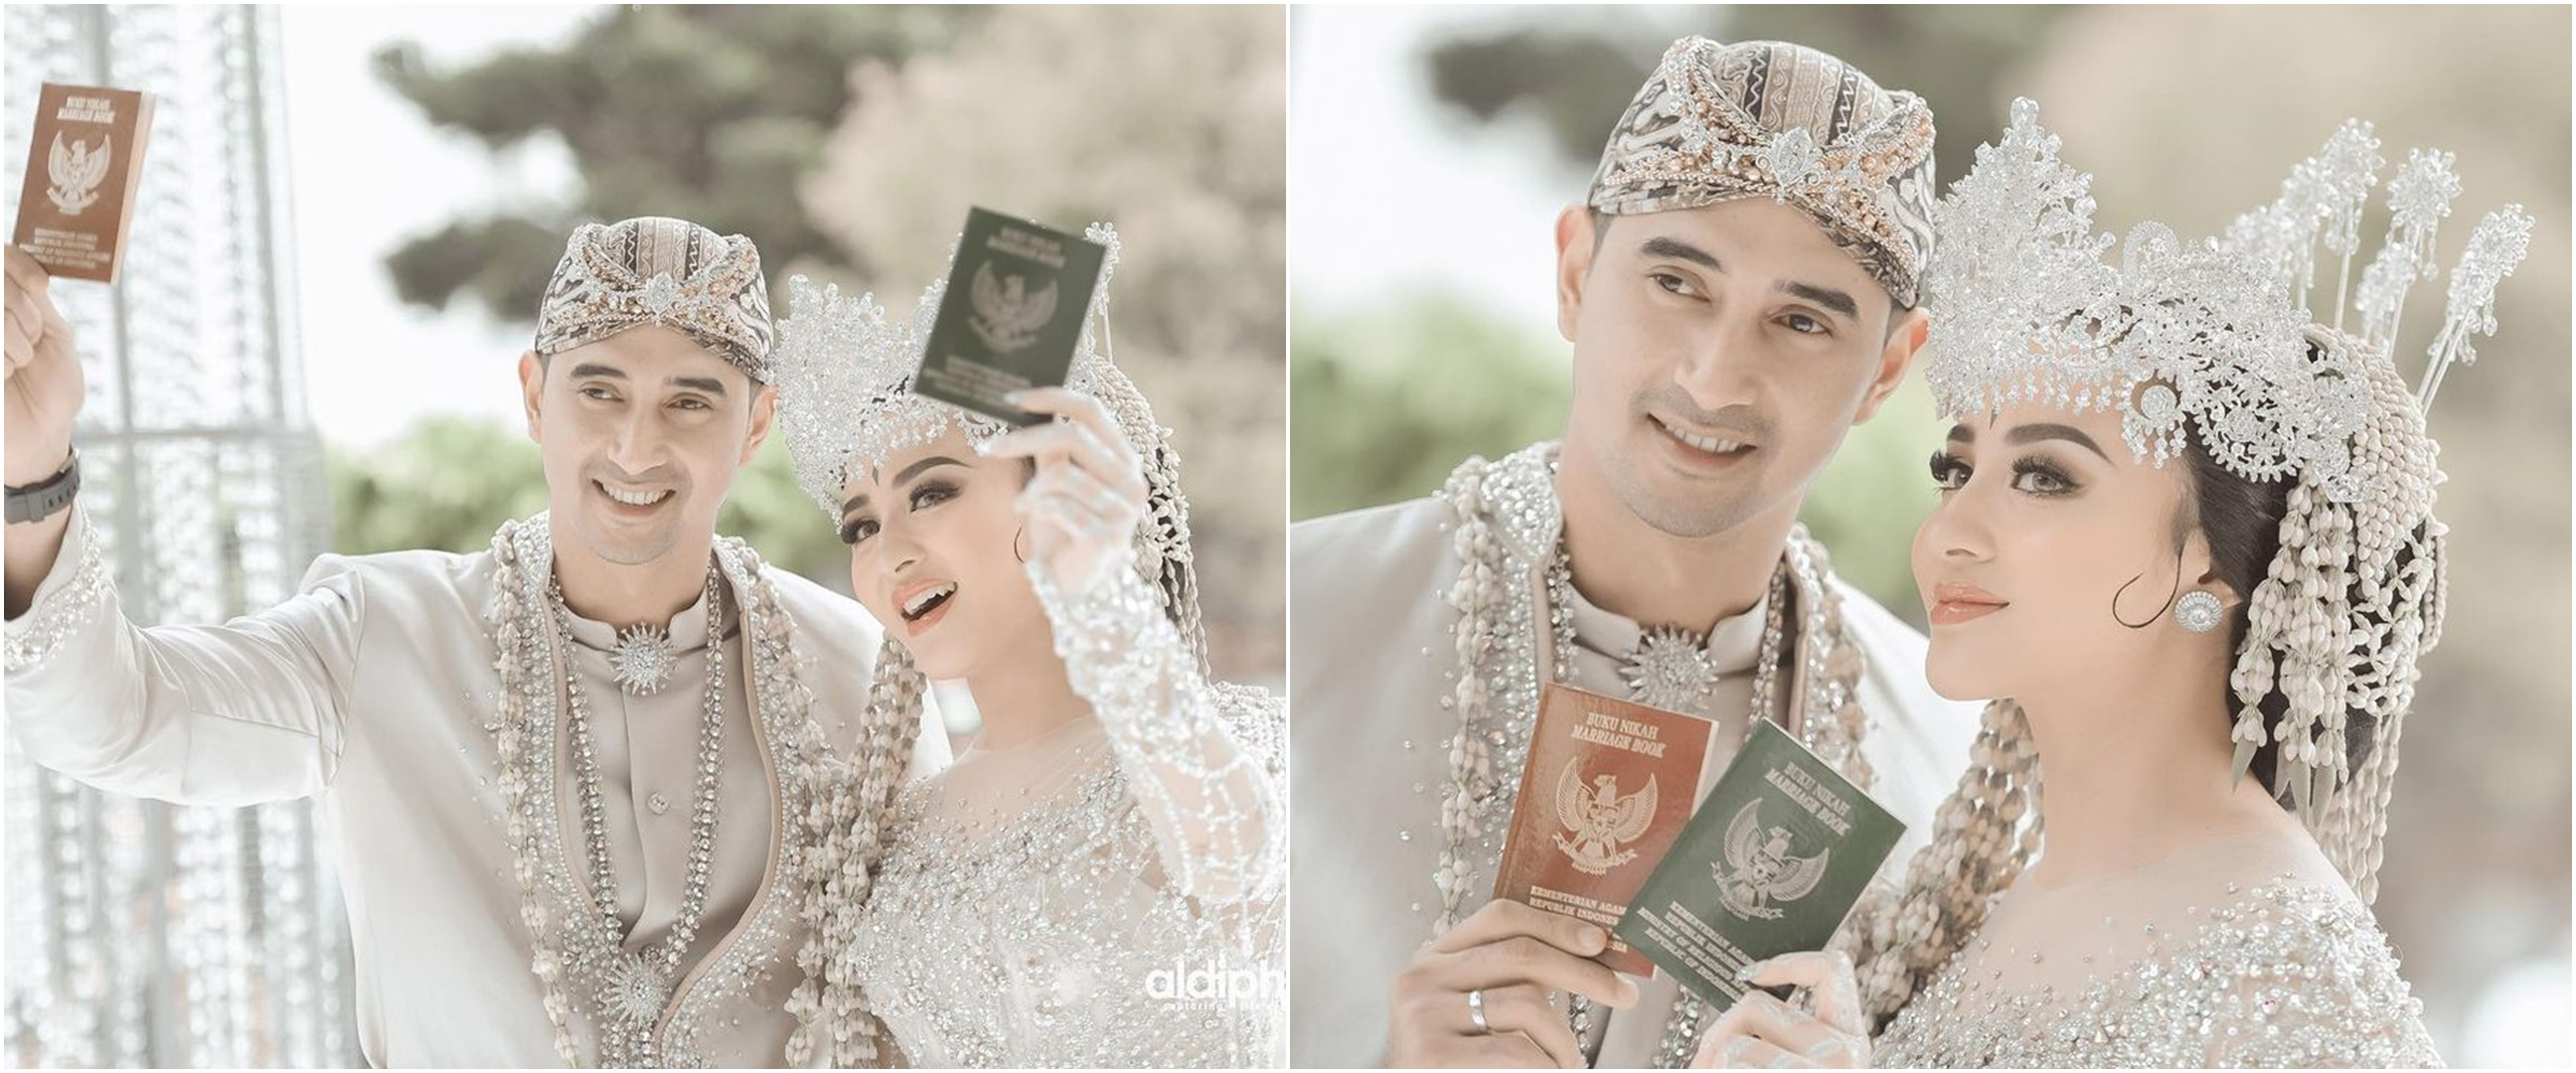 Ali Syakieb & Margin Wieheerm rencanakan honeymoon ke Tanah Suci